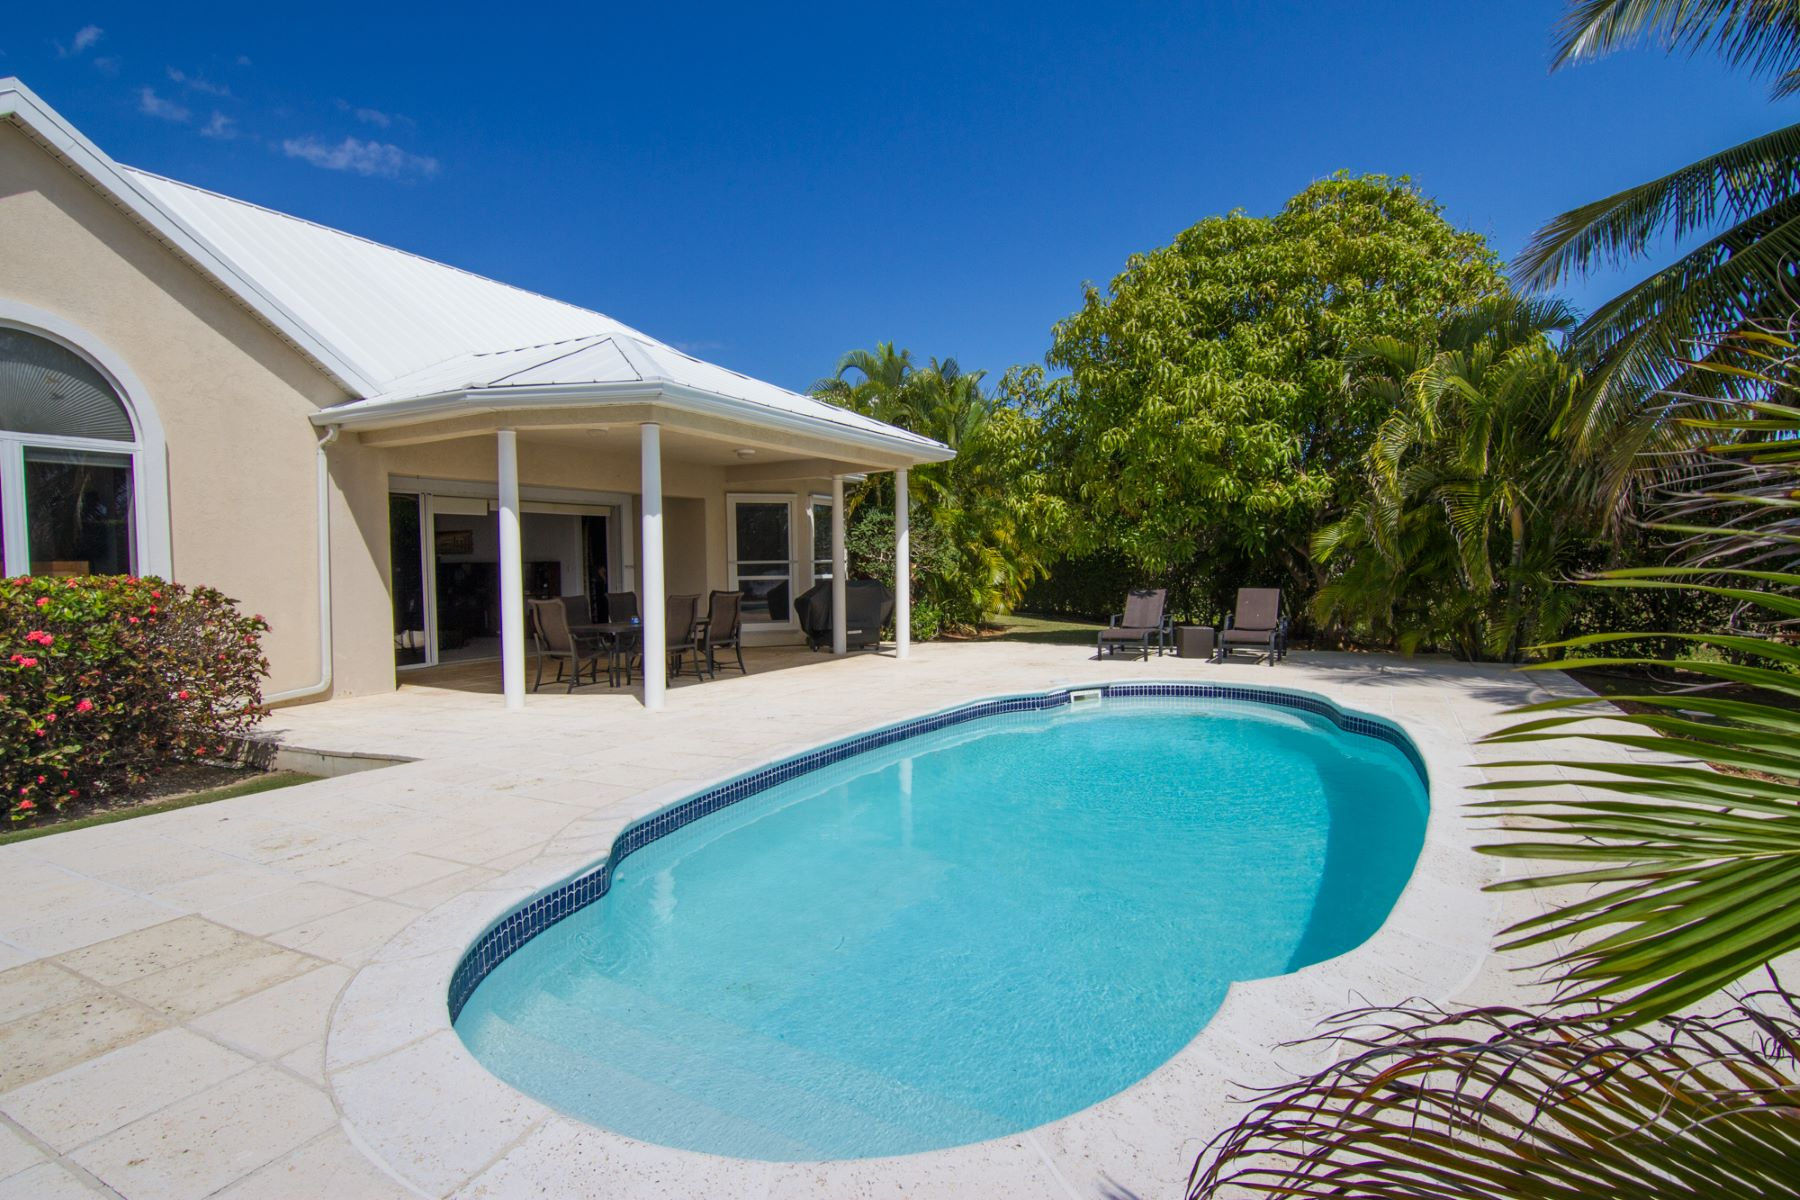 Single Family Home for Rent at Patrick's Island Executive Villa Patricks Island, Cayman Islands